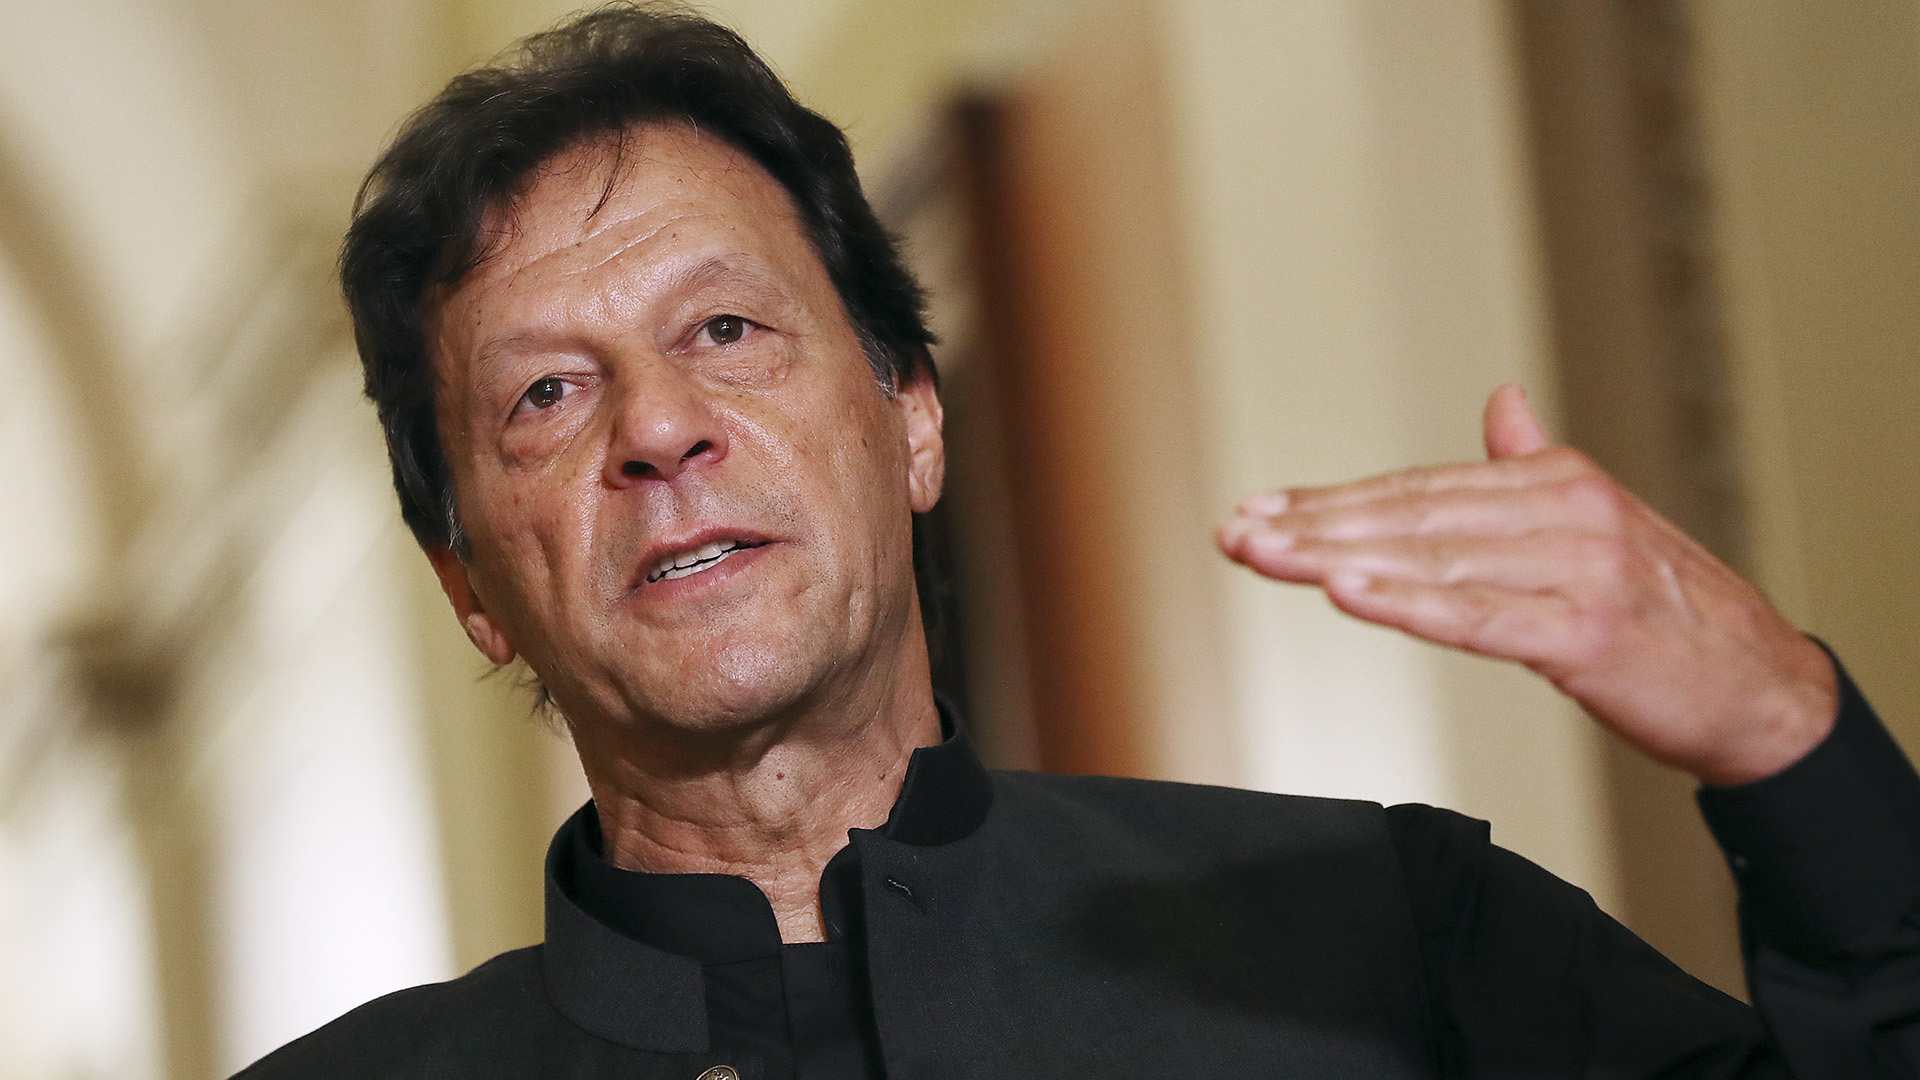 Outrage Over Pakistan PM's Comments On Rising Rape Cases